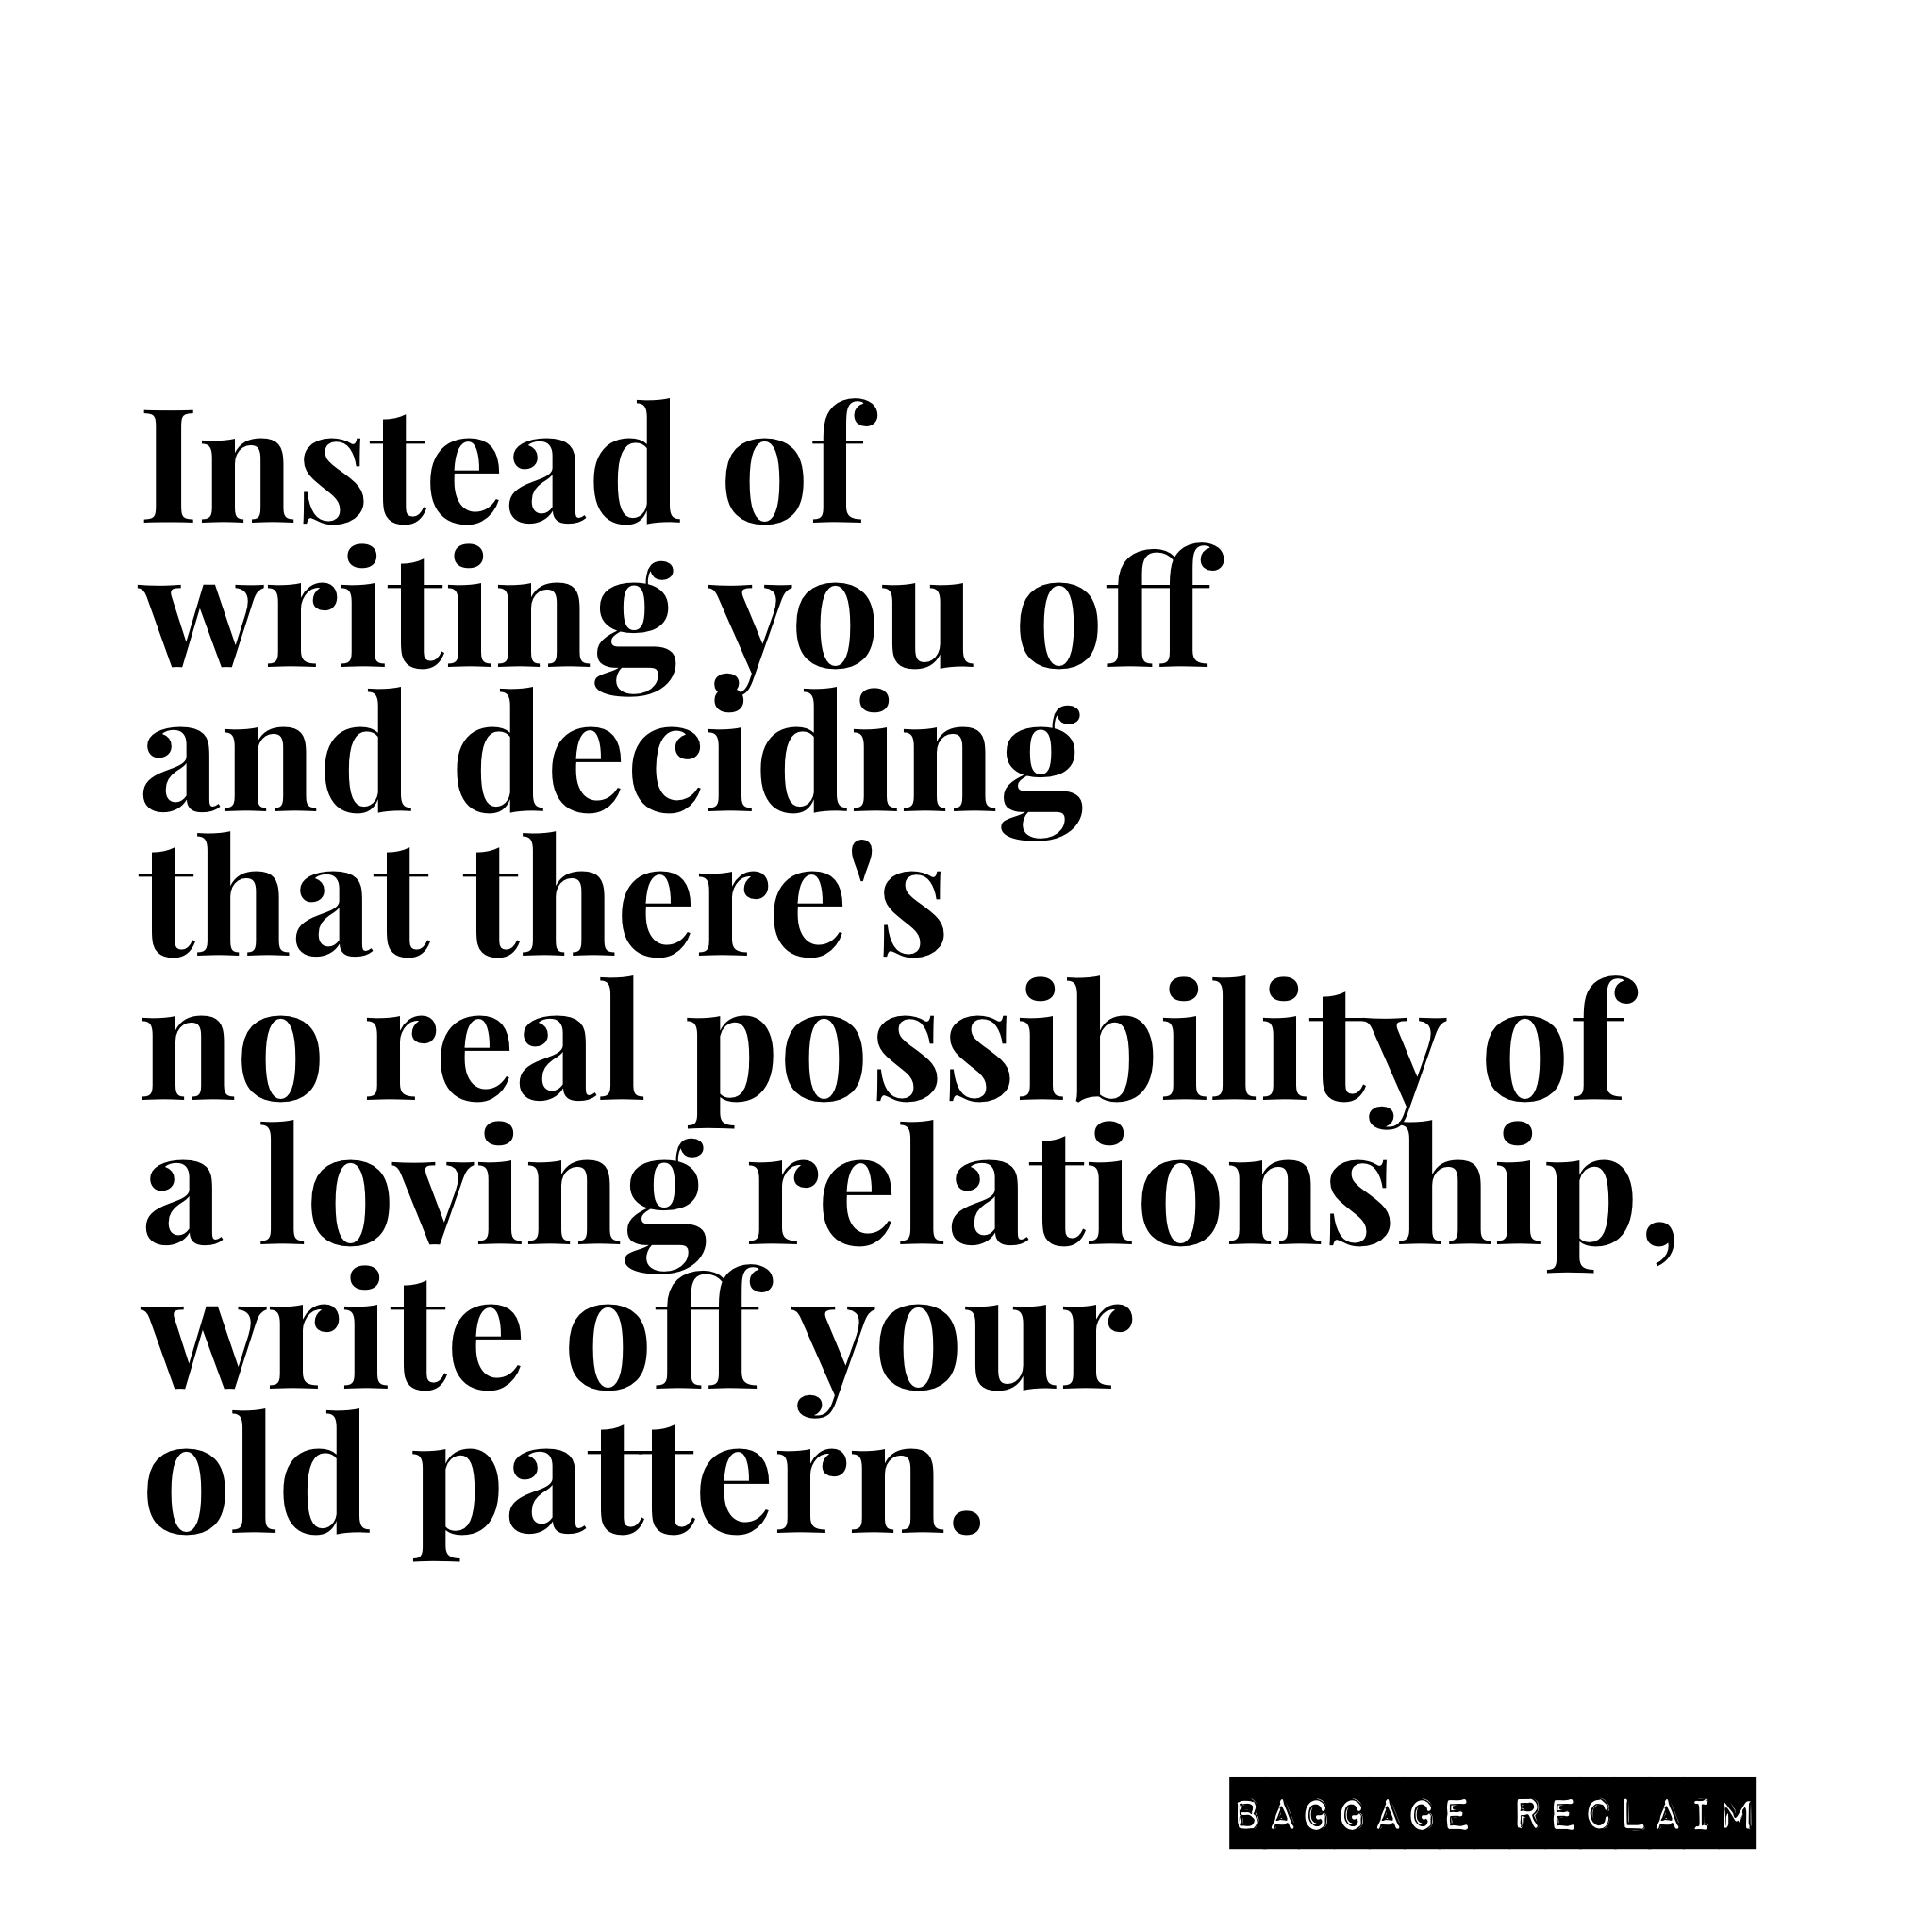 Instead of writing you off and deciding that there's no real possibility of a loving relationship, write off your old pattern.